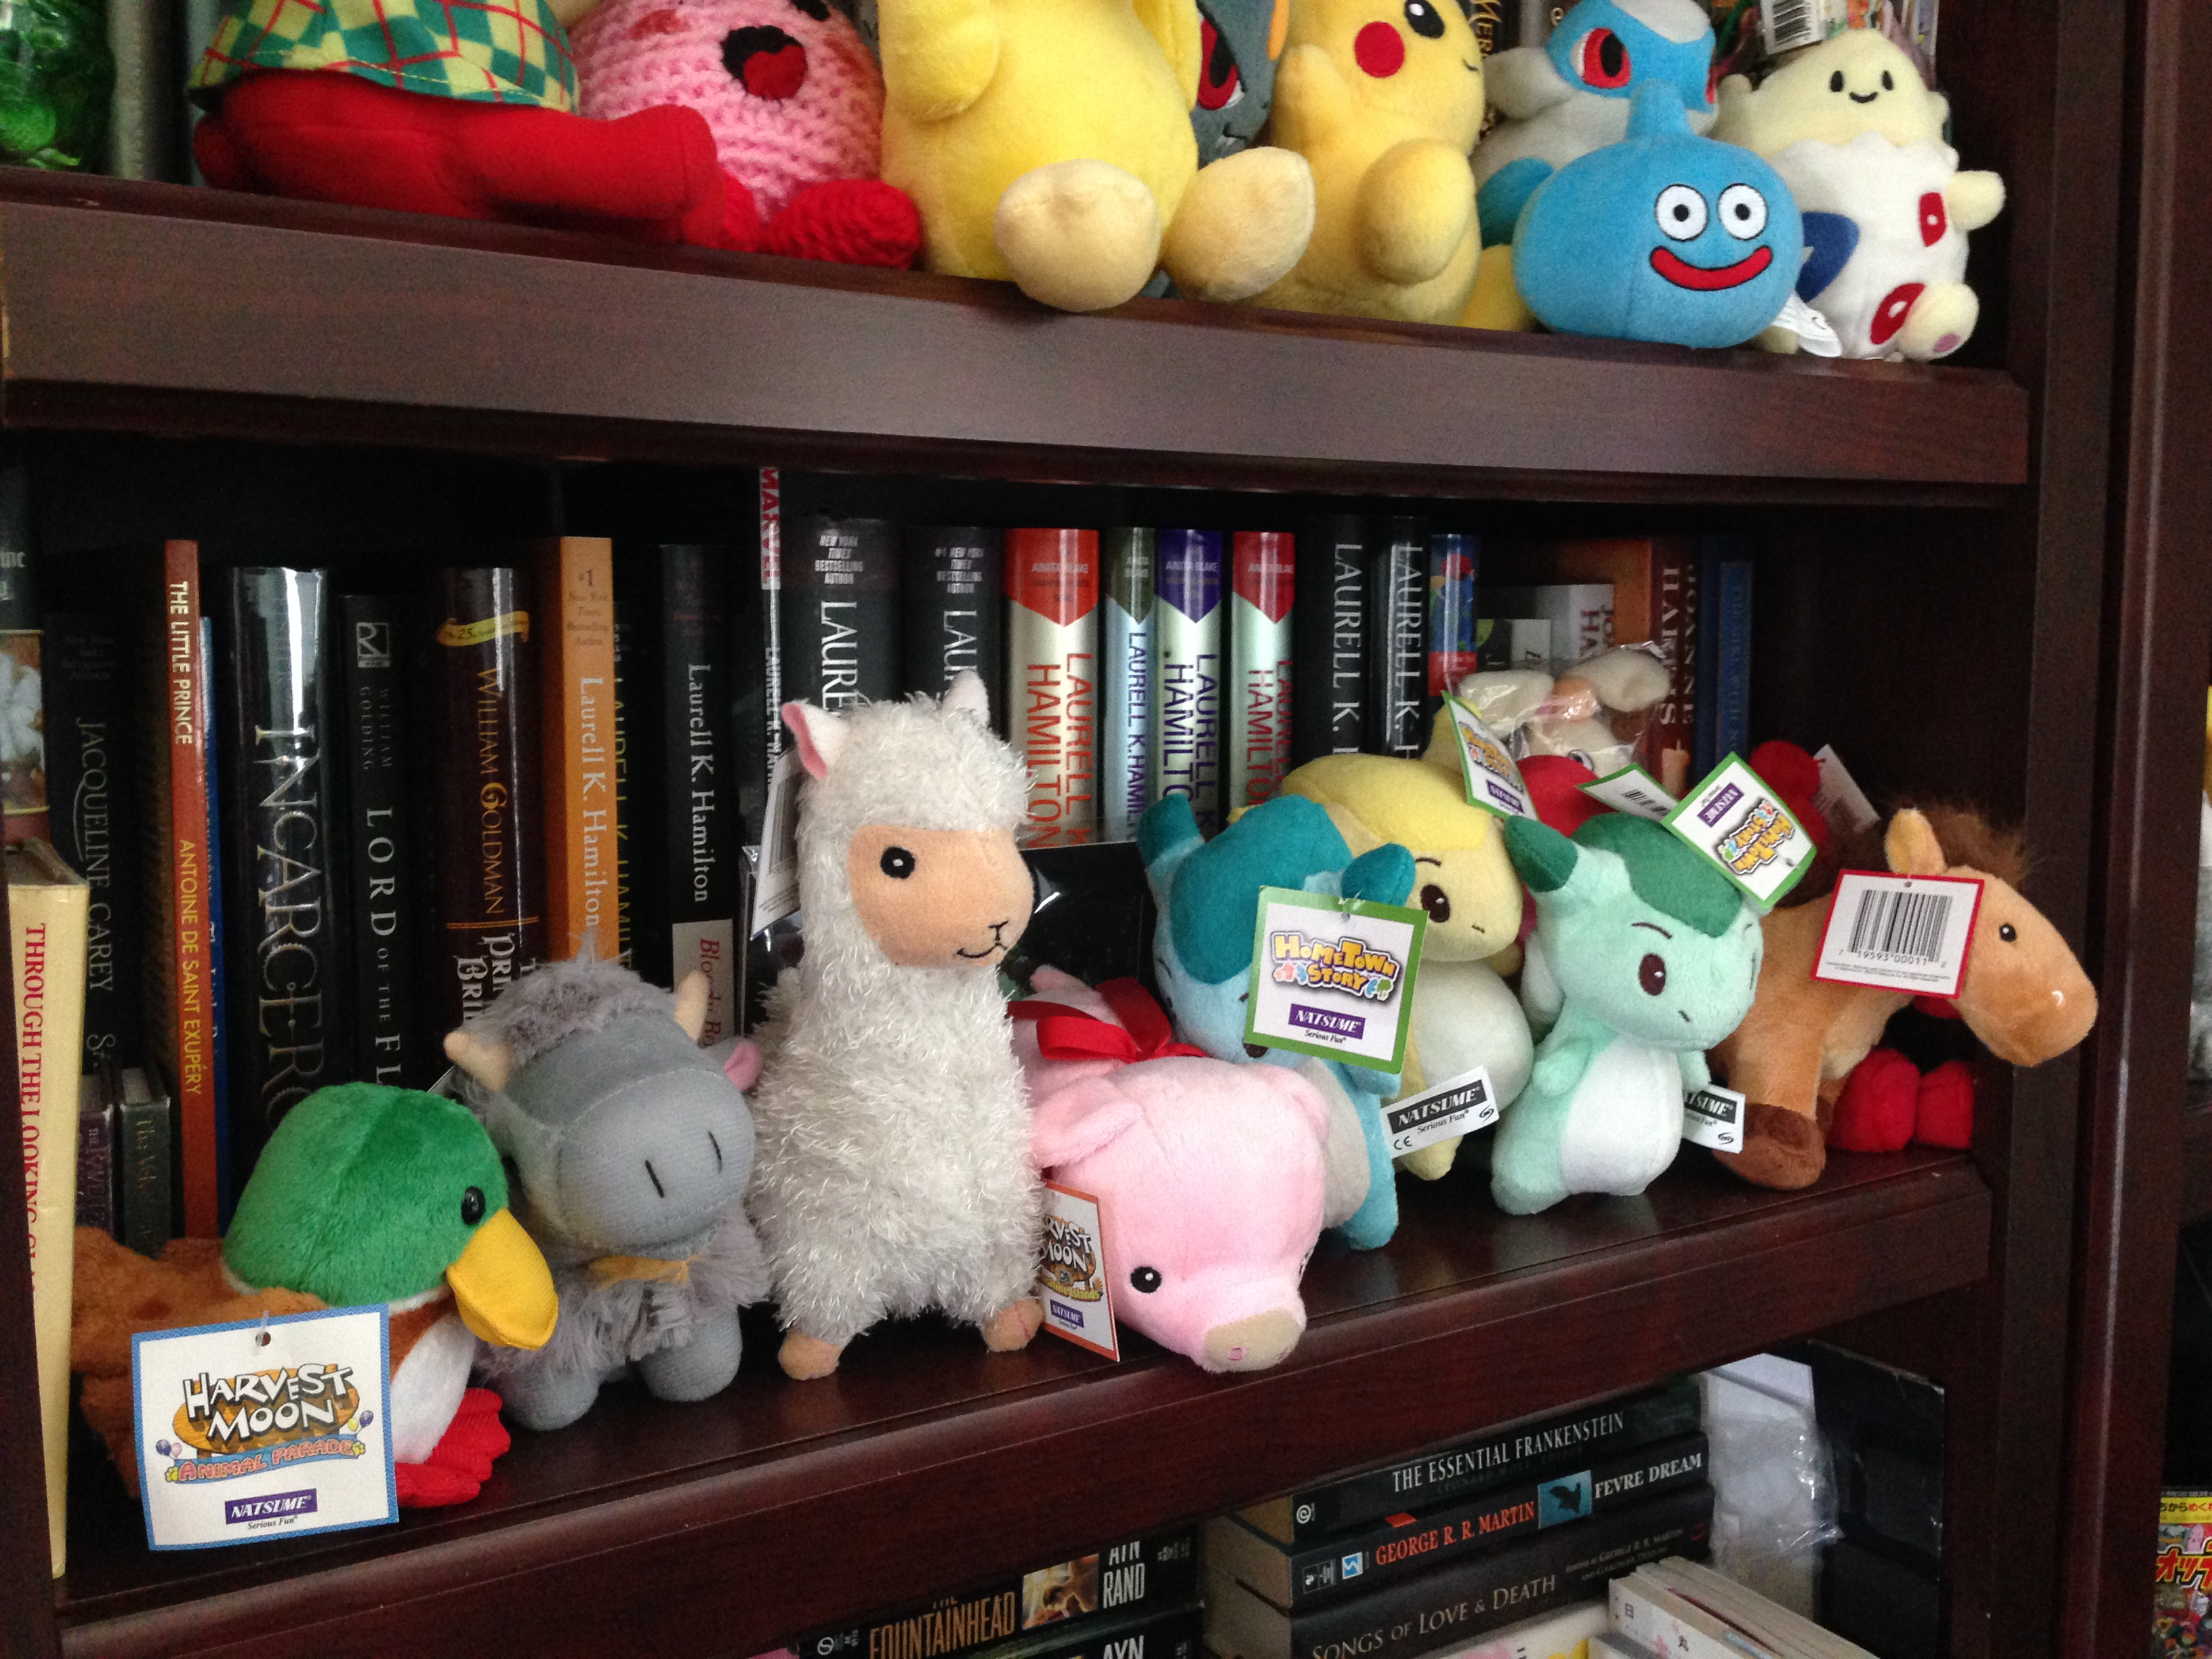 My collection of Harvest Moon plushies.